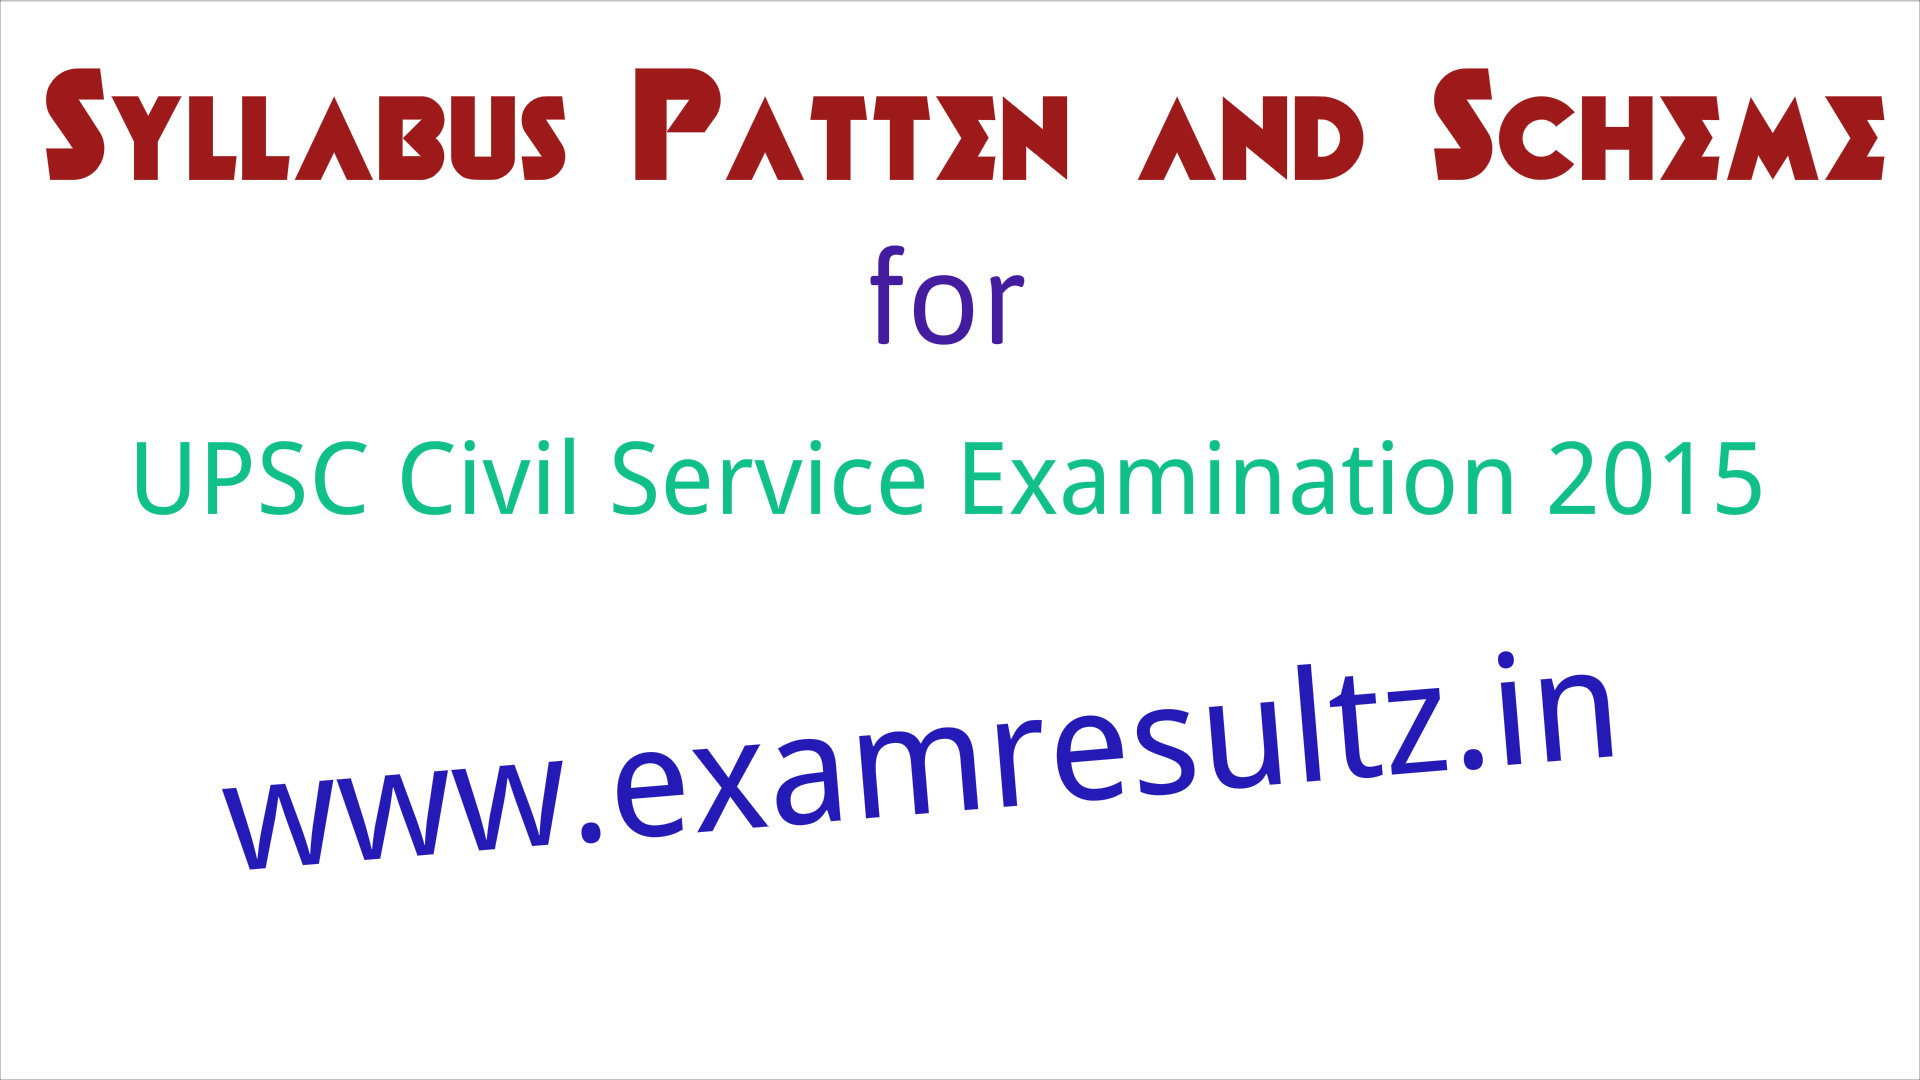 syllabus patten scheme upsc civil service preliminary examination 2015